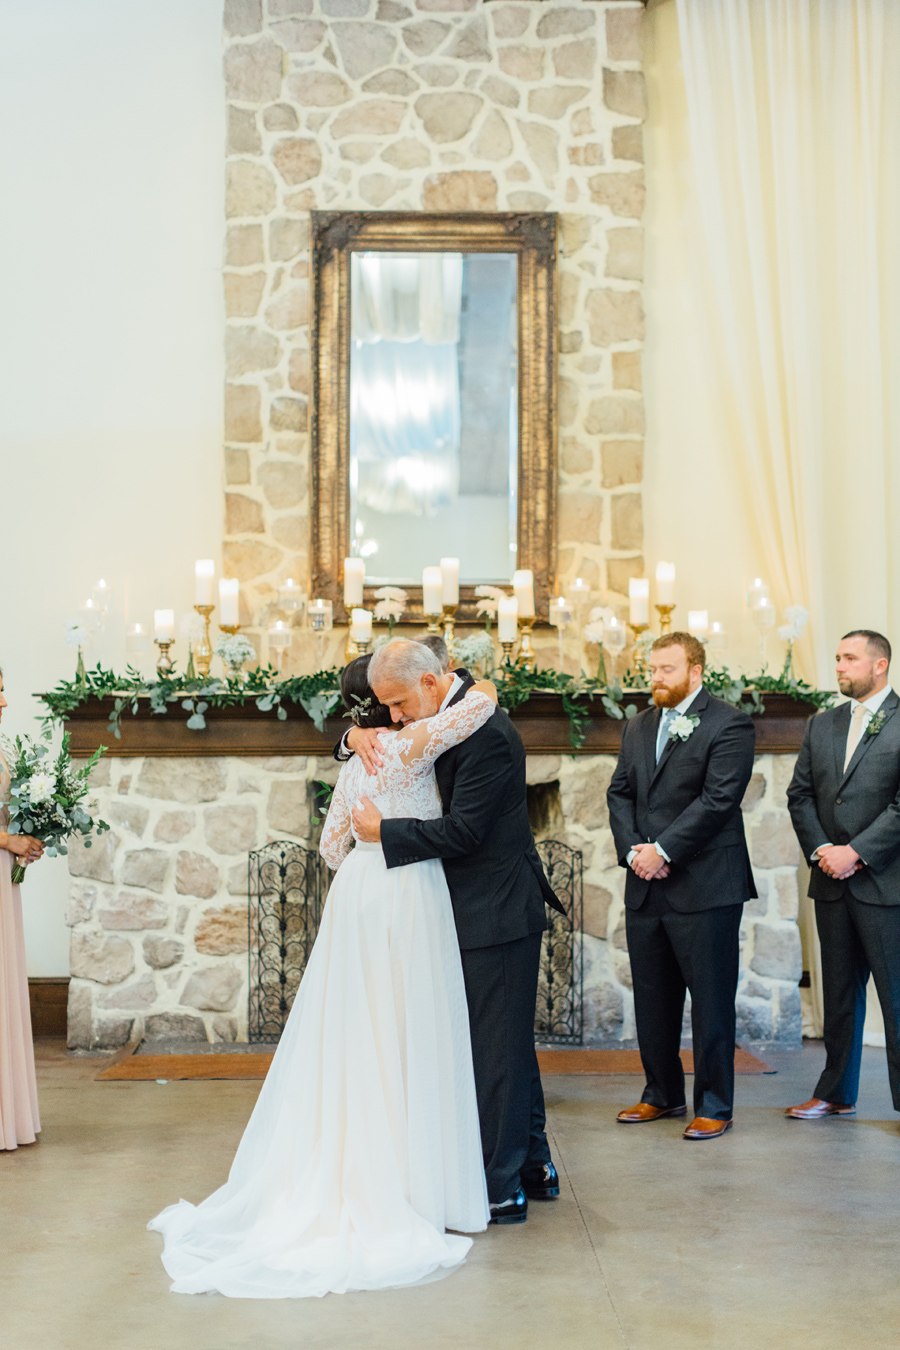 the-inn-at-leola-wedding-lancaster-pennsylvania-wedding-photographer-rebeka-viola-photograhy (56).jpg